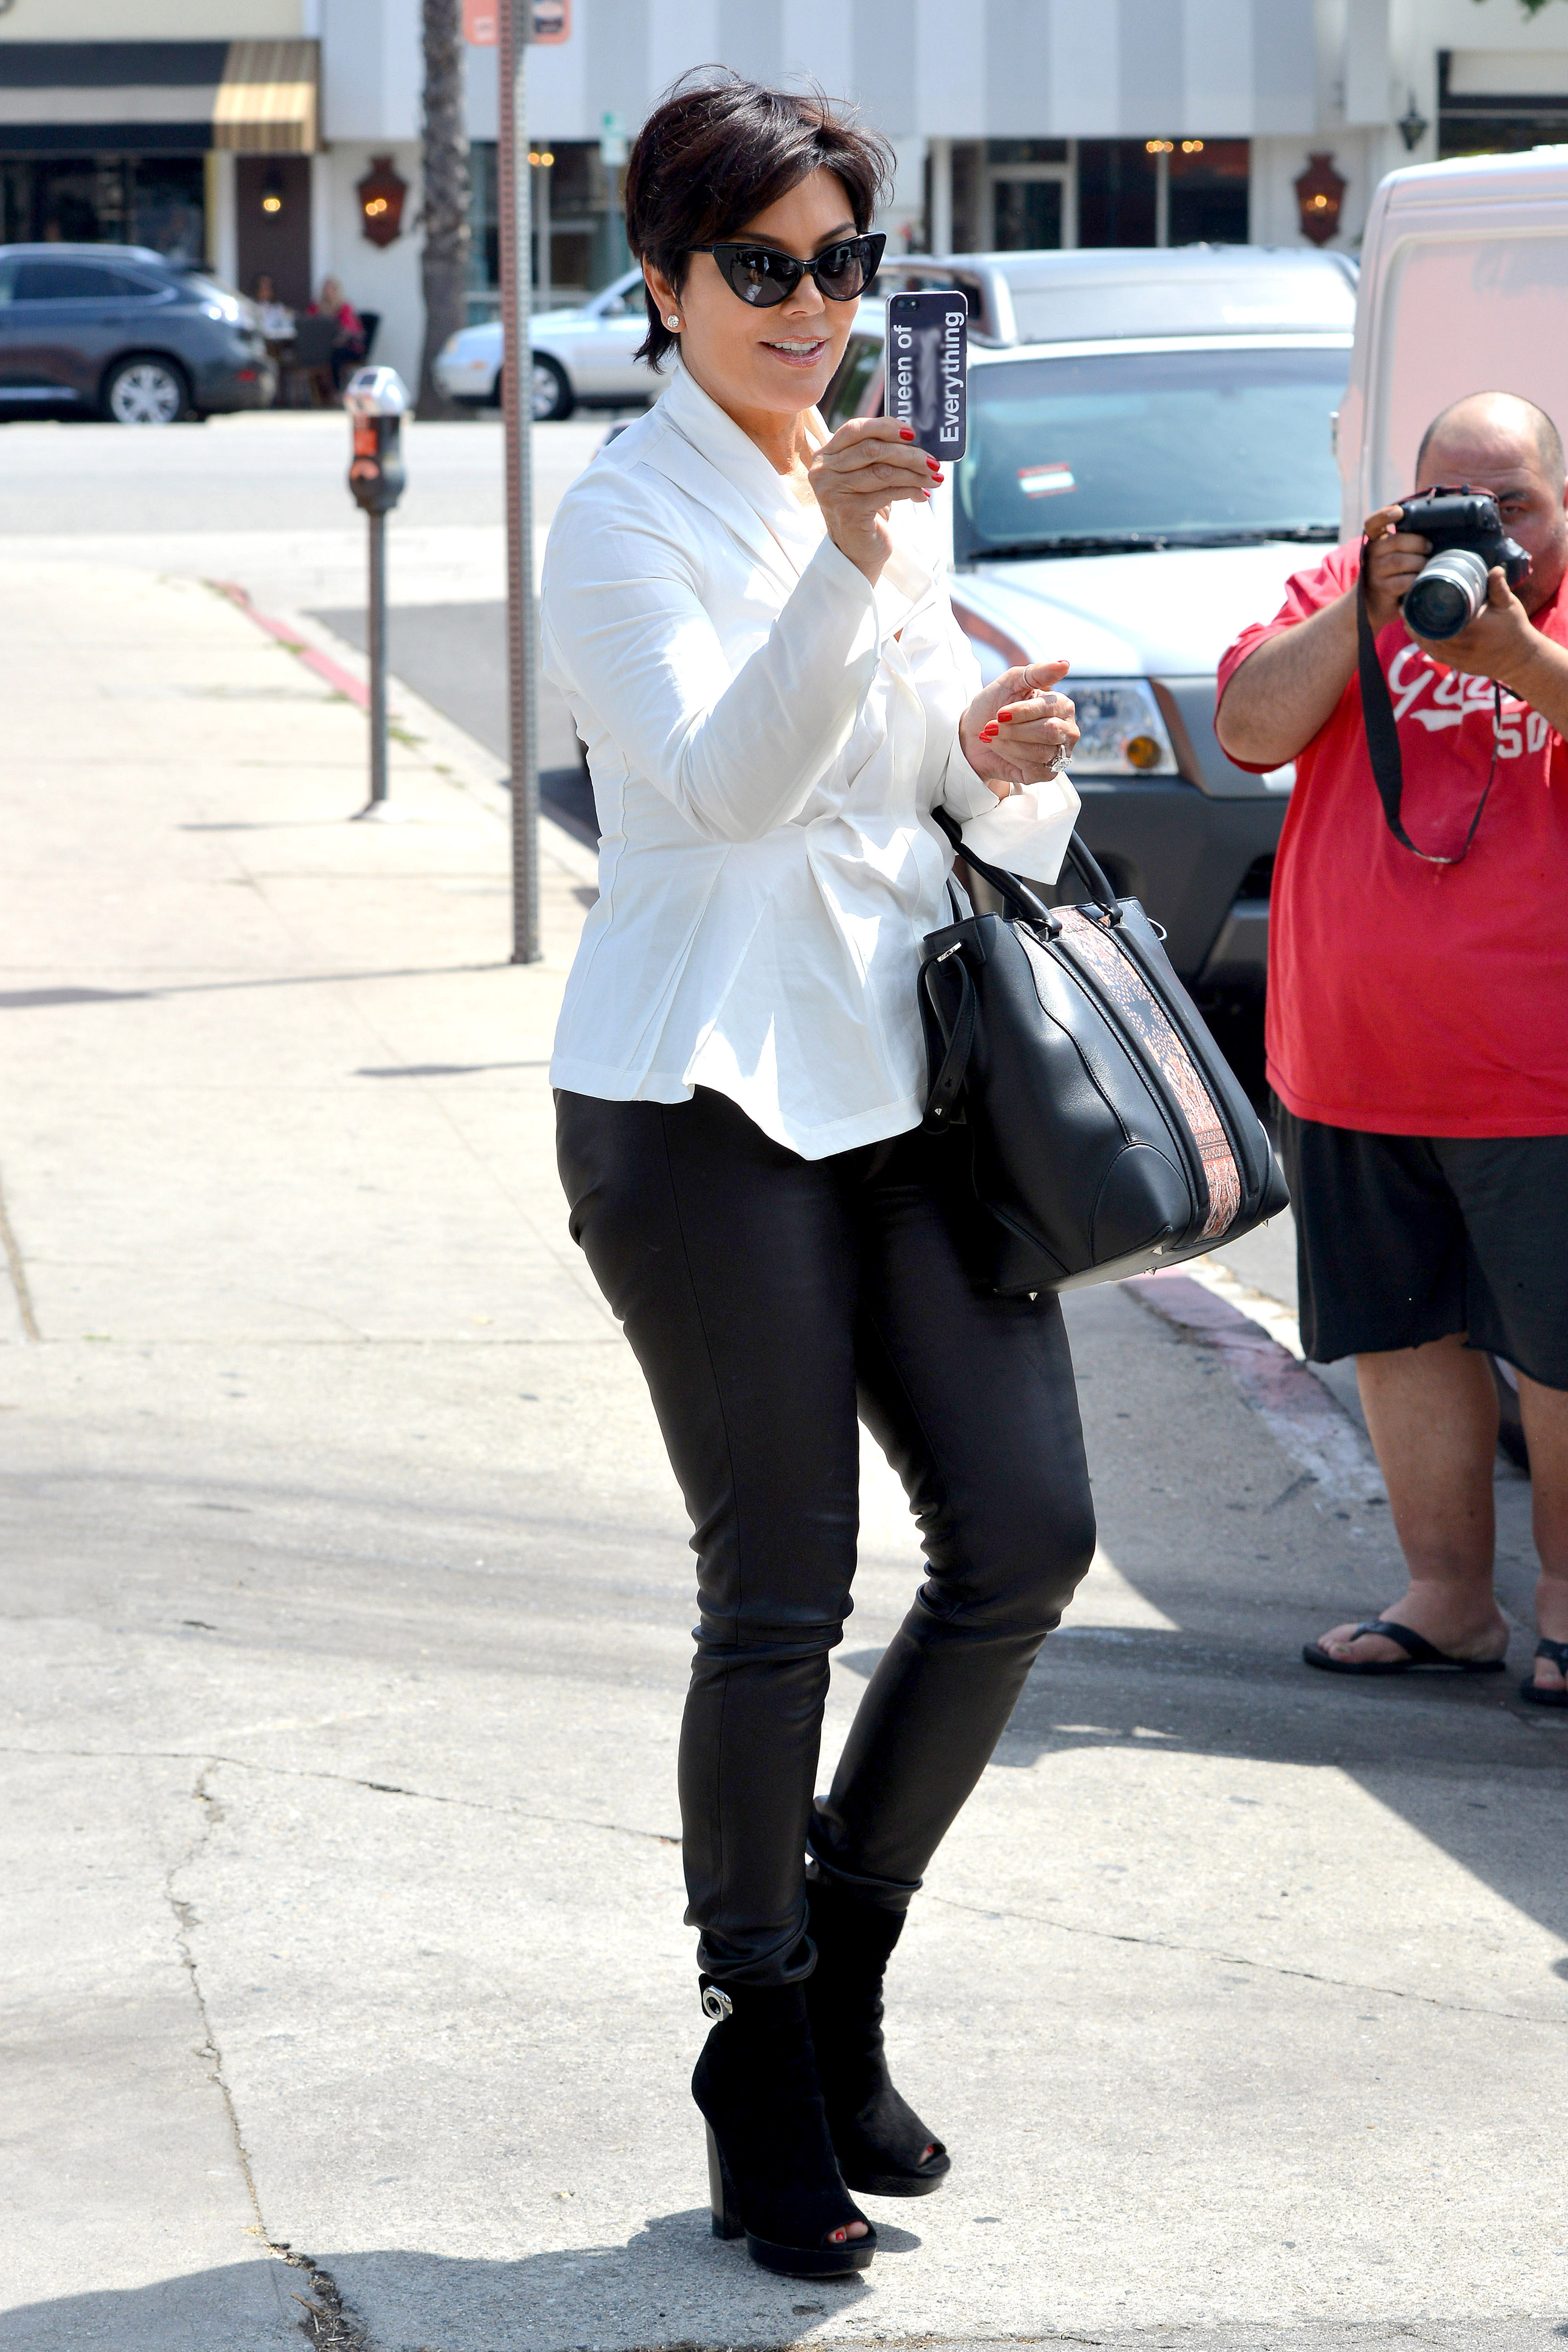 kris jenner takes pic of paps